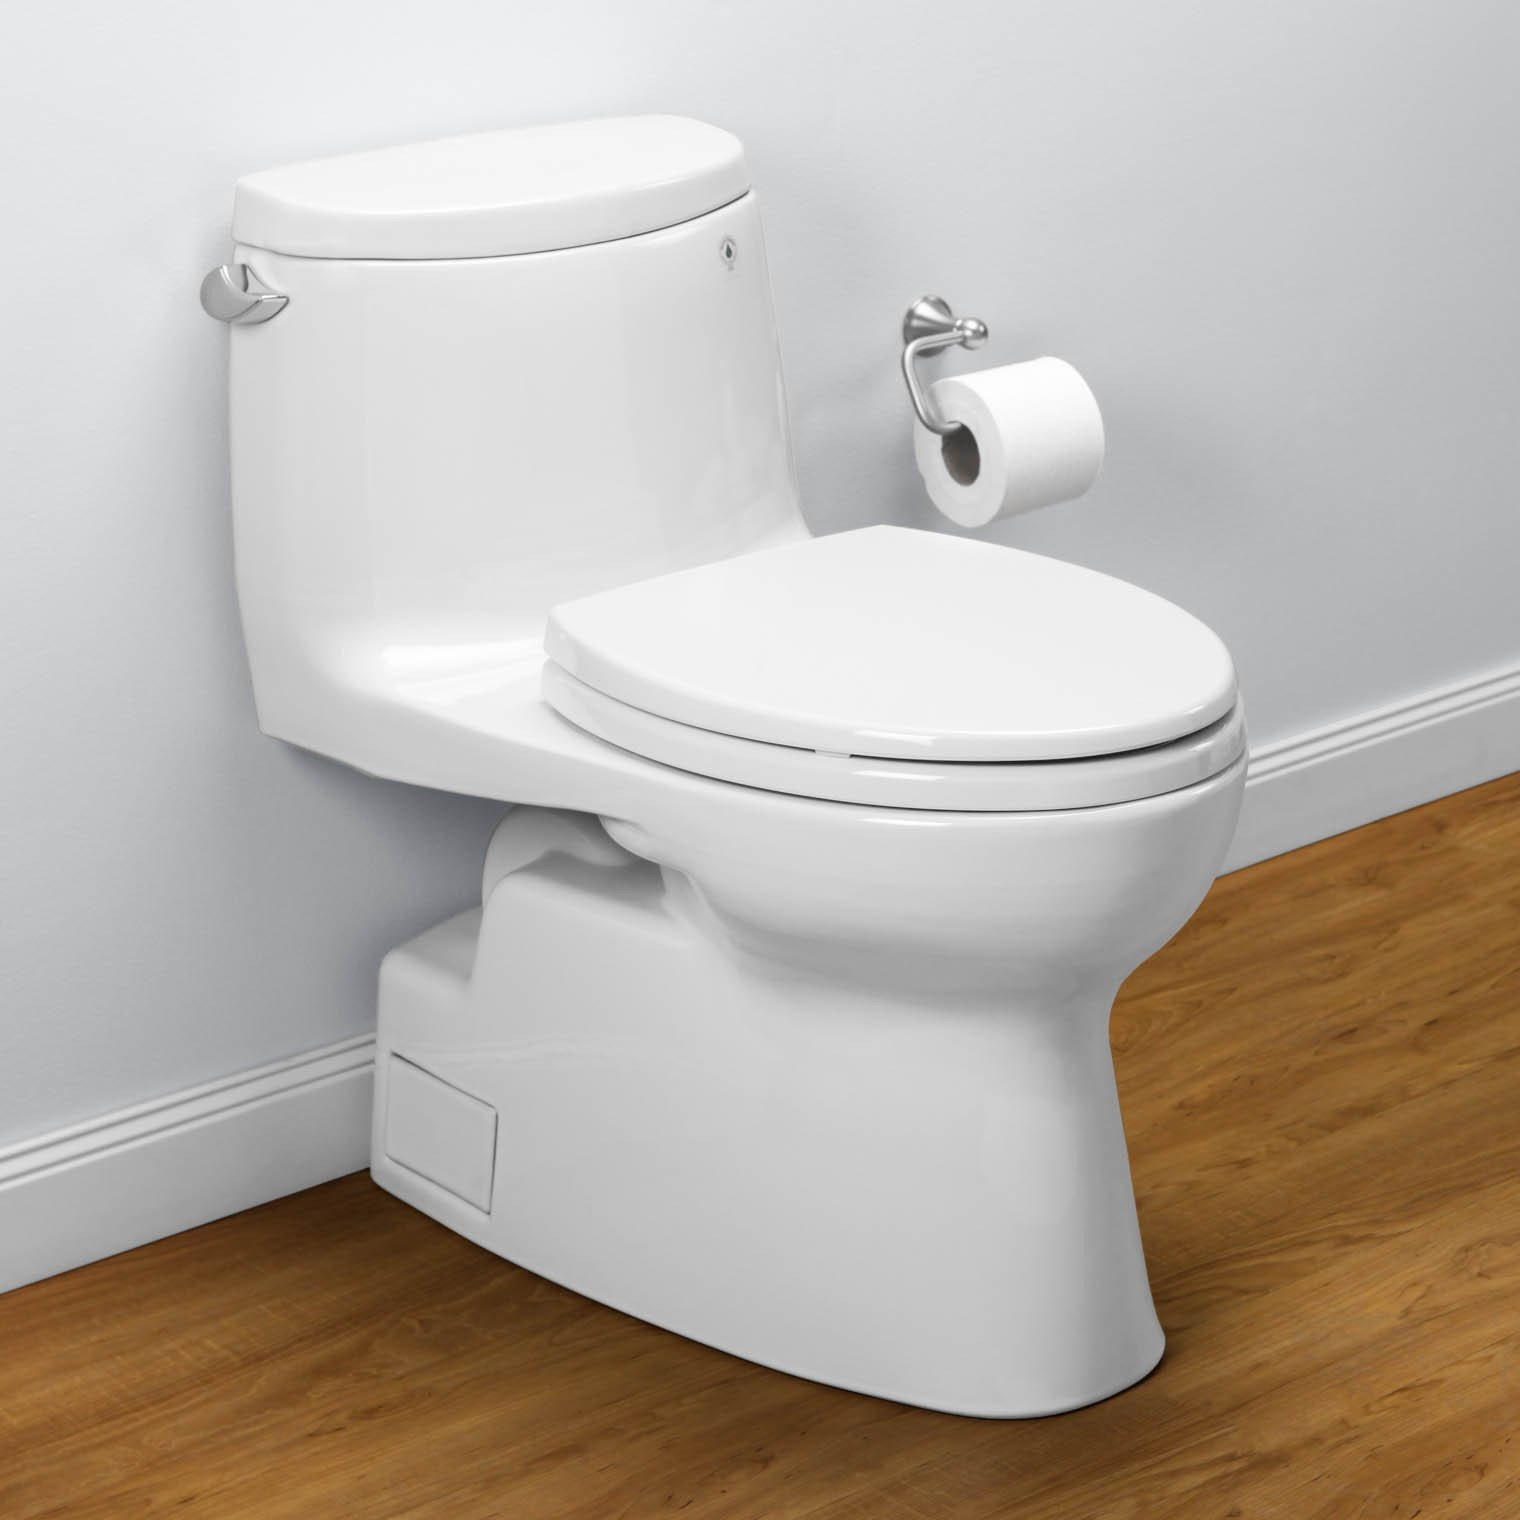 TOTO Carlyle II Review: The Best Tornado Flush Toilet - Shop Toilet